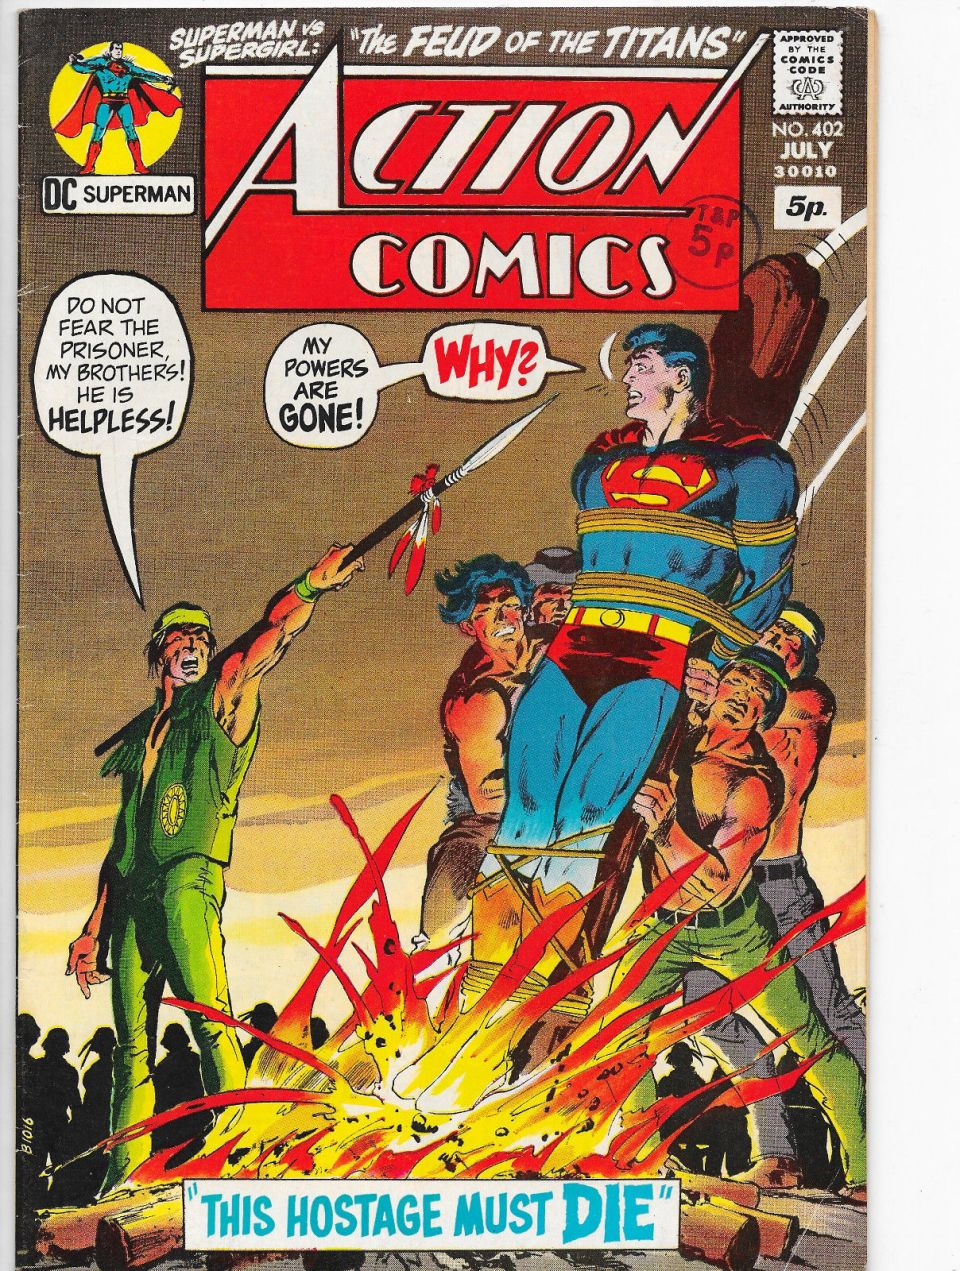 Action Comics #402, 5p Pence Price Variant